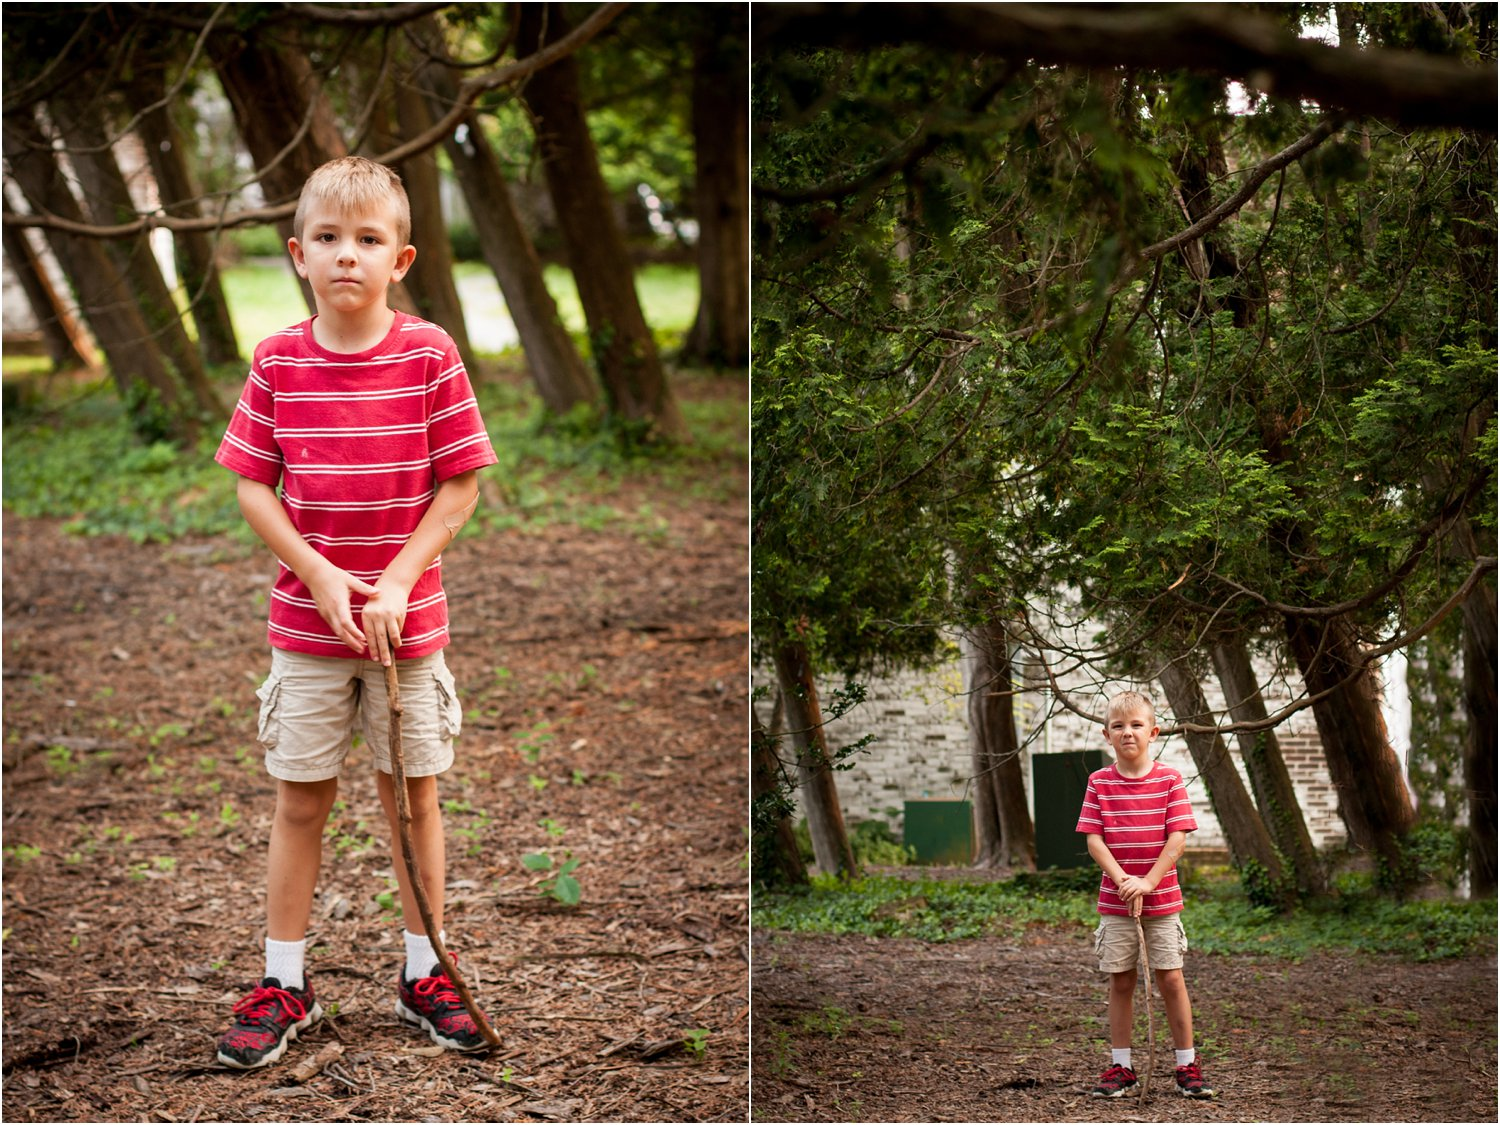 Blandy_Arboretum_Sibling_Mini_Sessions_Dodrill_0001.jpg